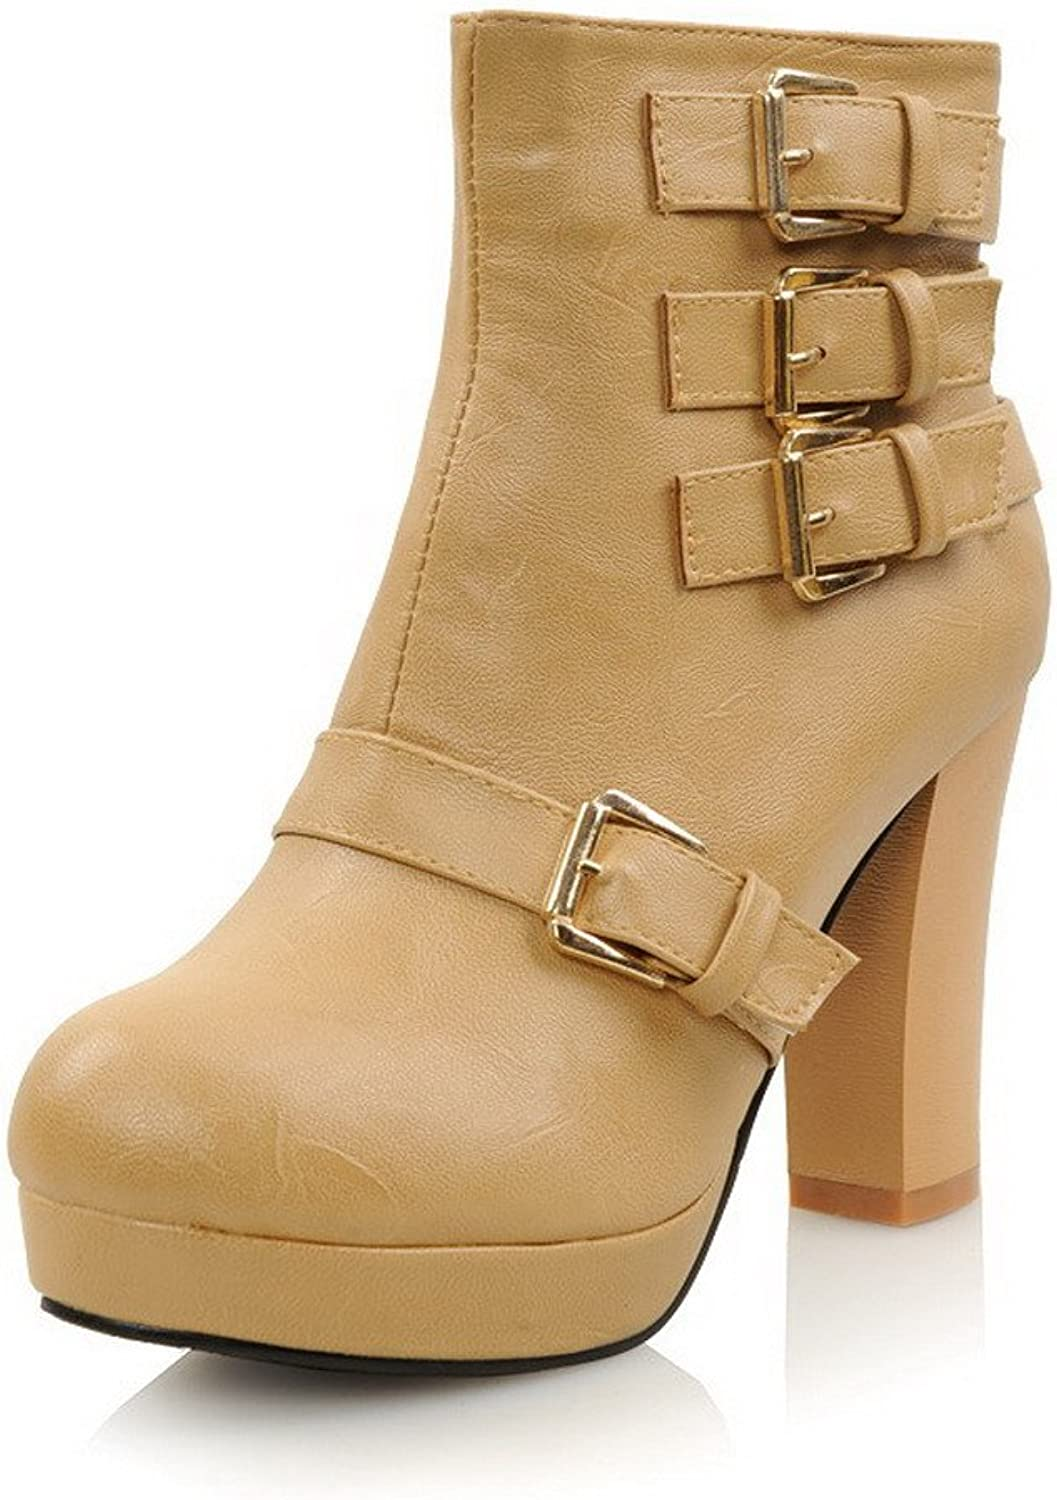 WeenFashion Women's Import PU Velvet Lining High Chunky Heels Solid Ankle Boots with Metal Buckles